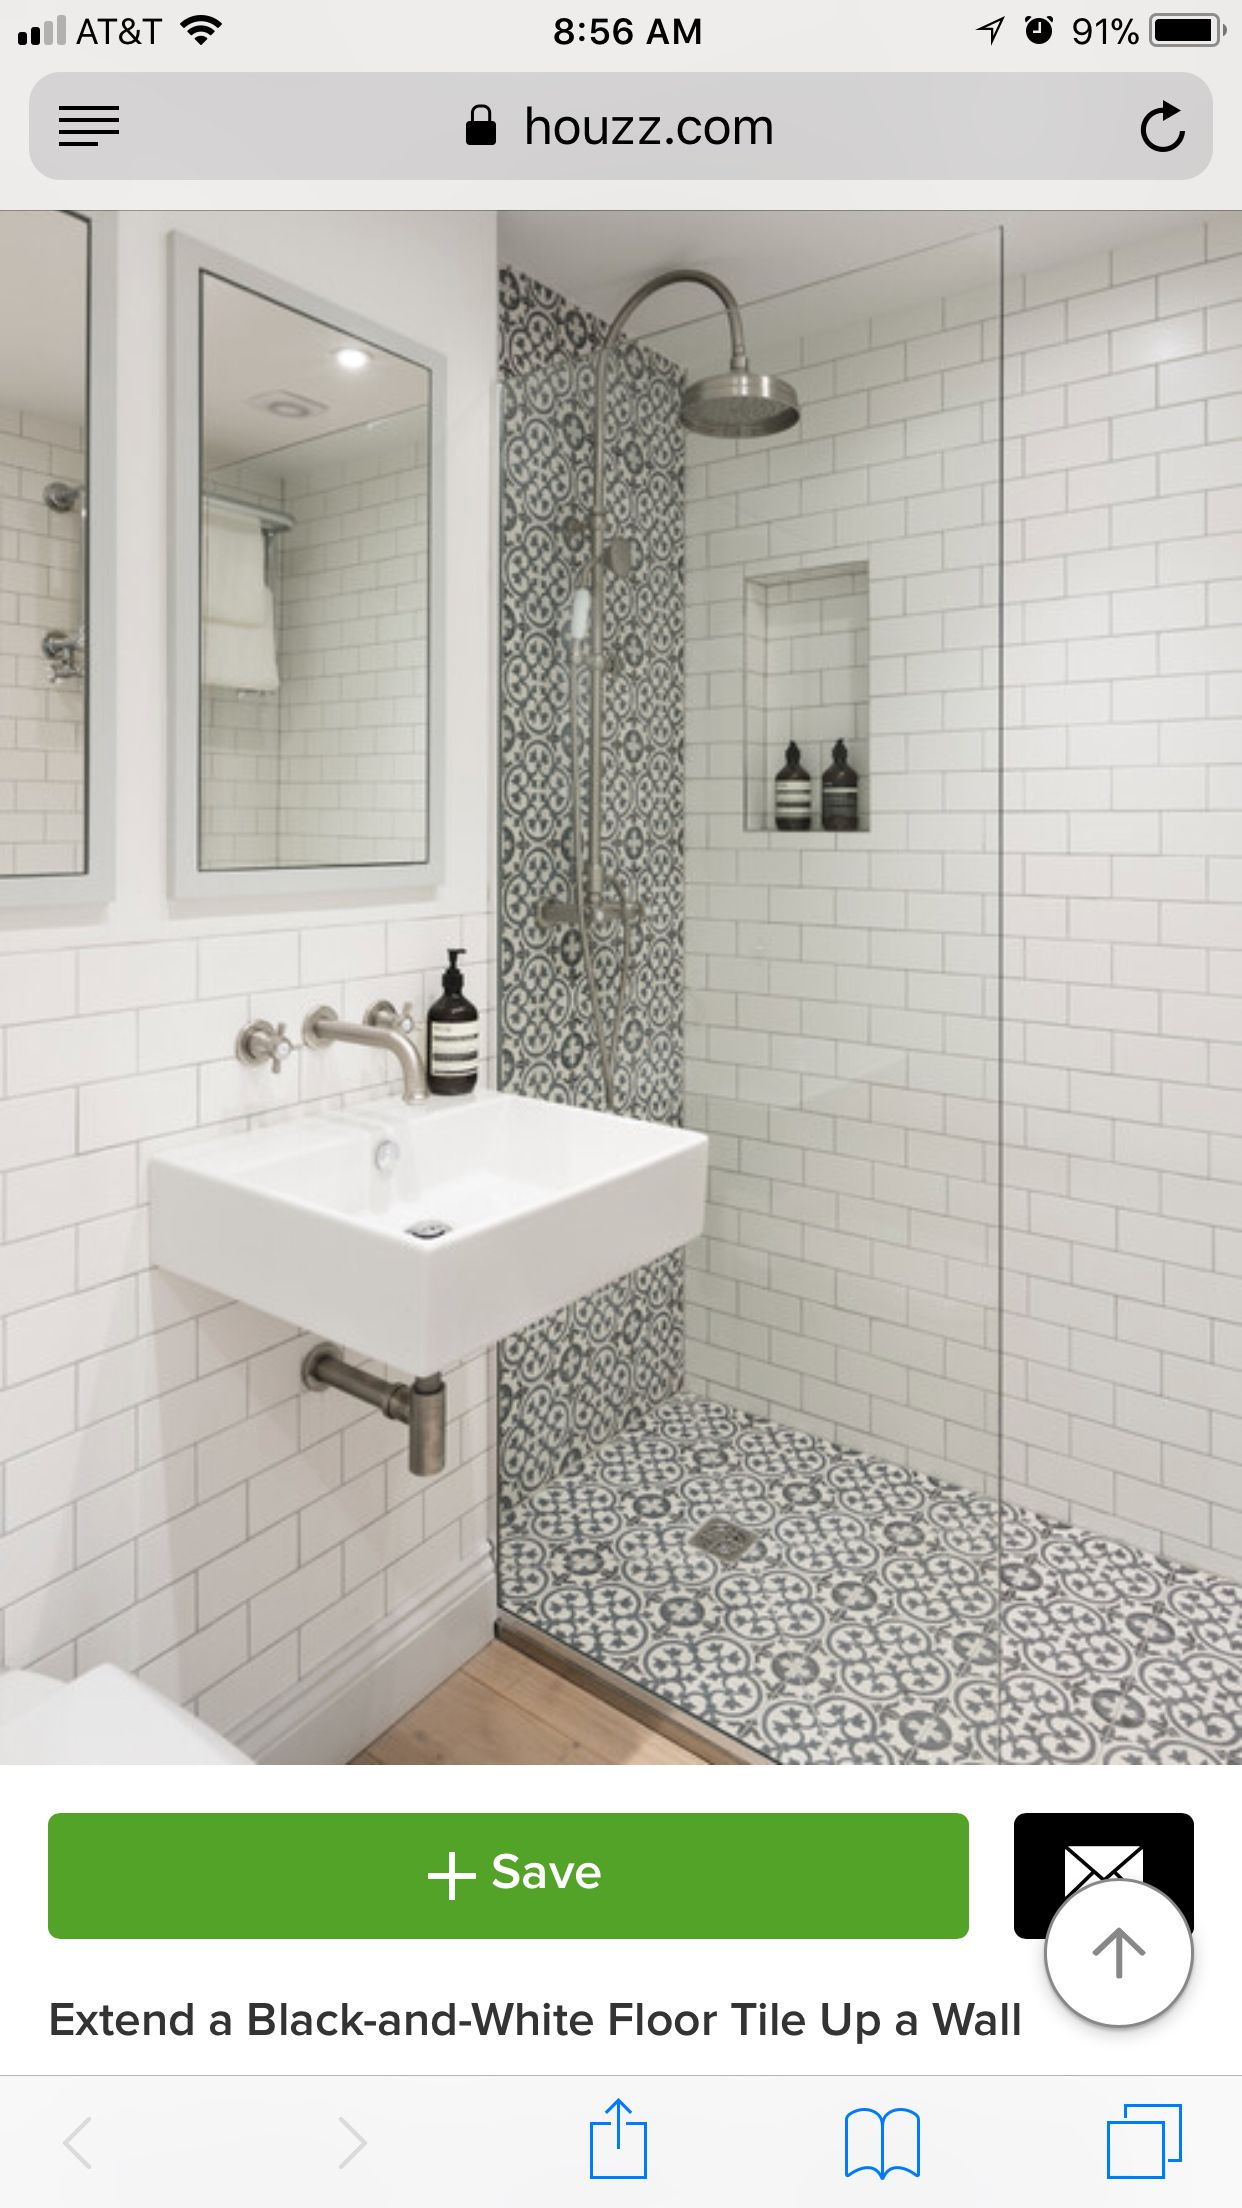 Use of tile from floor up the wall has interesting effects - https ...